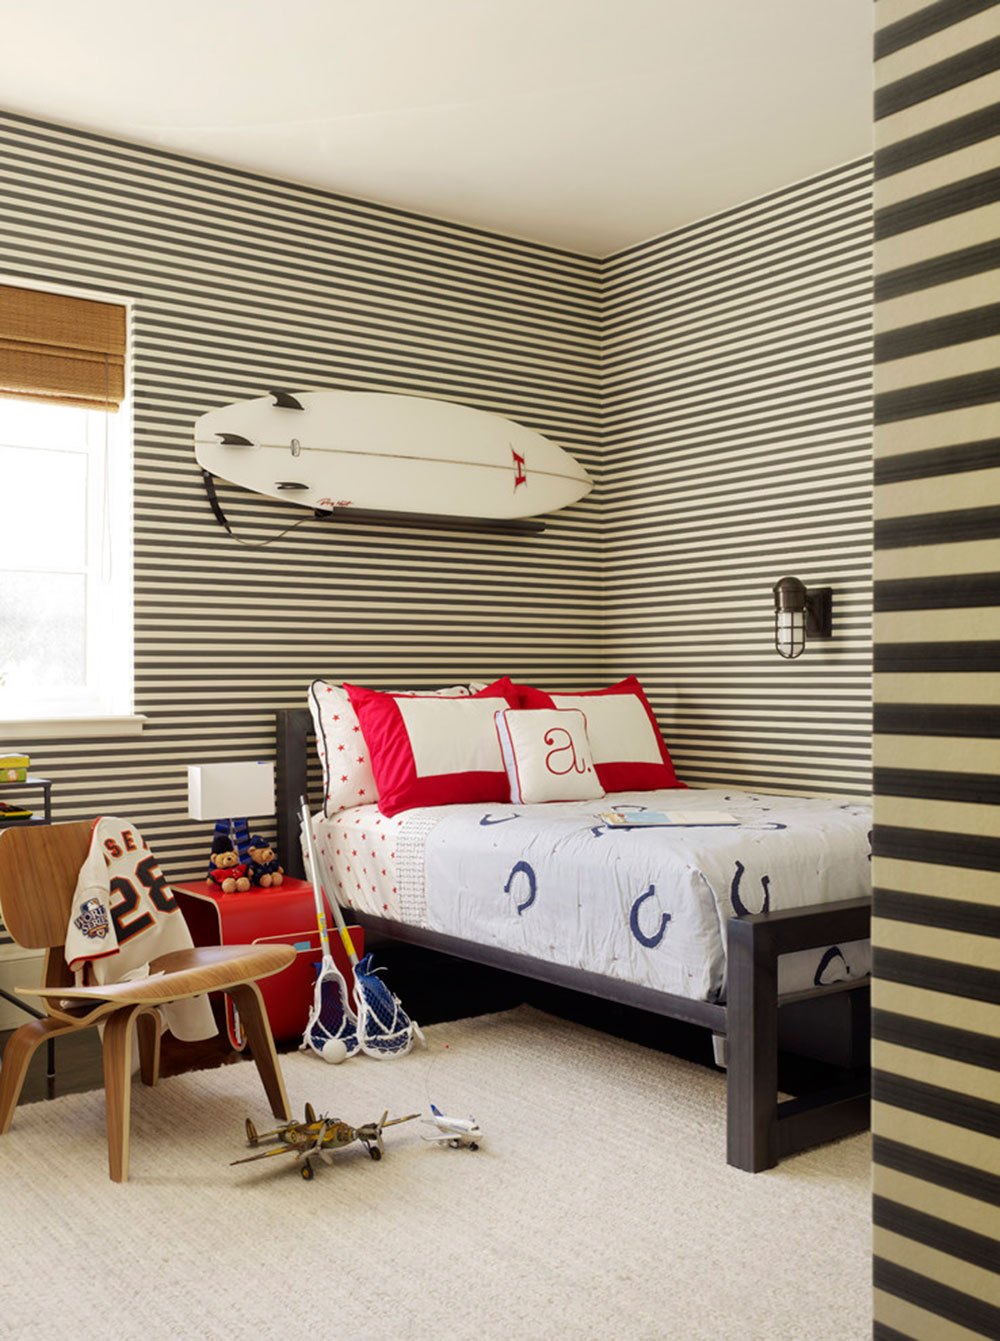 Cool And Cozy Boys Room Paint Ideas21 Cool And Cozy